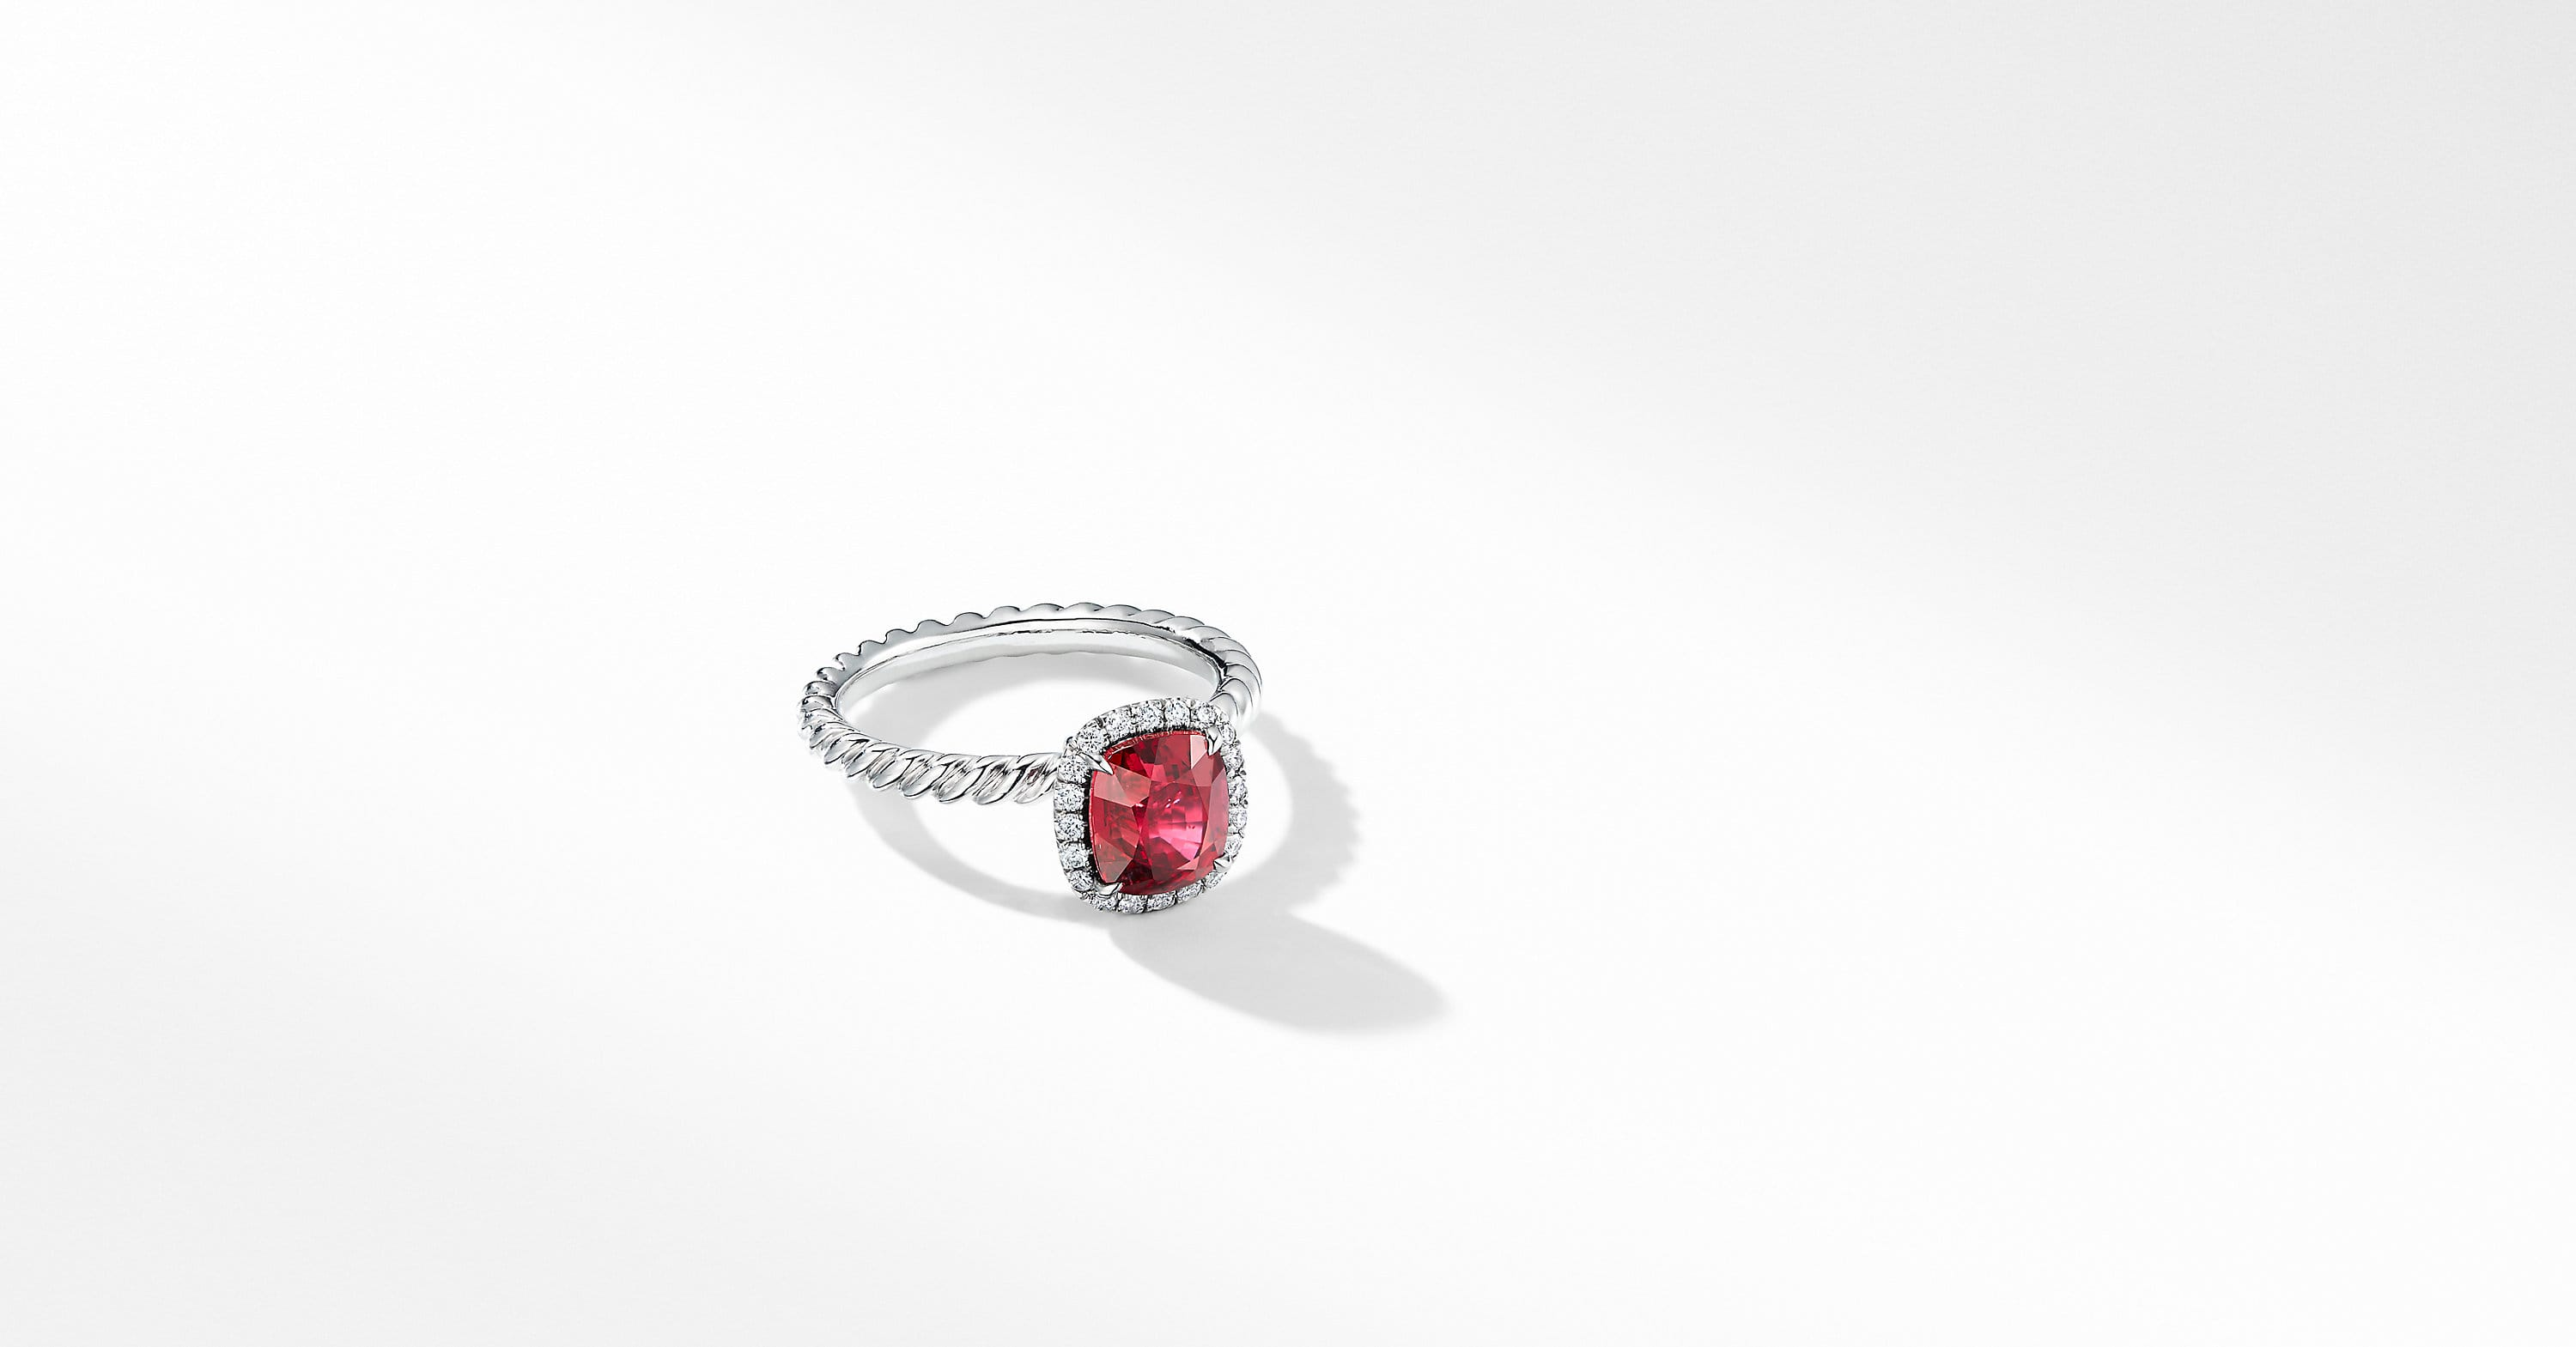 DY Capri Engagement Ring in Platinum with Ruby, Cushion